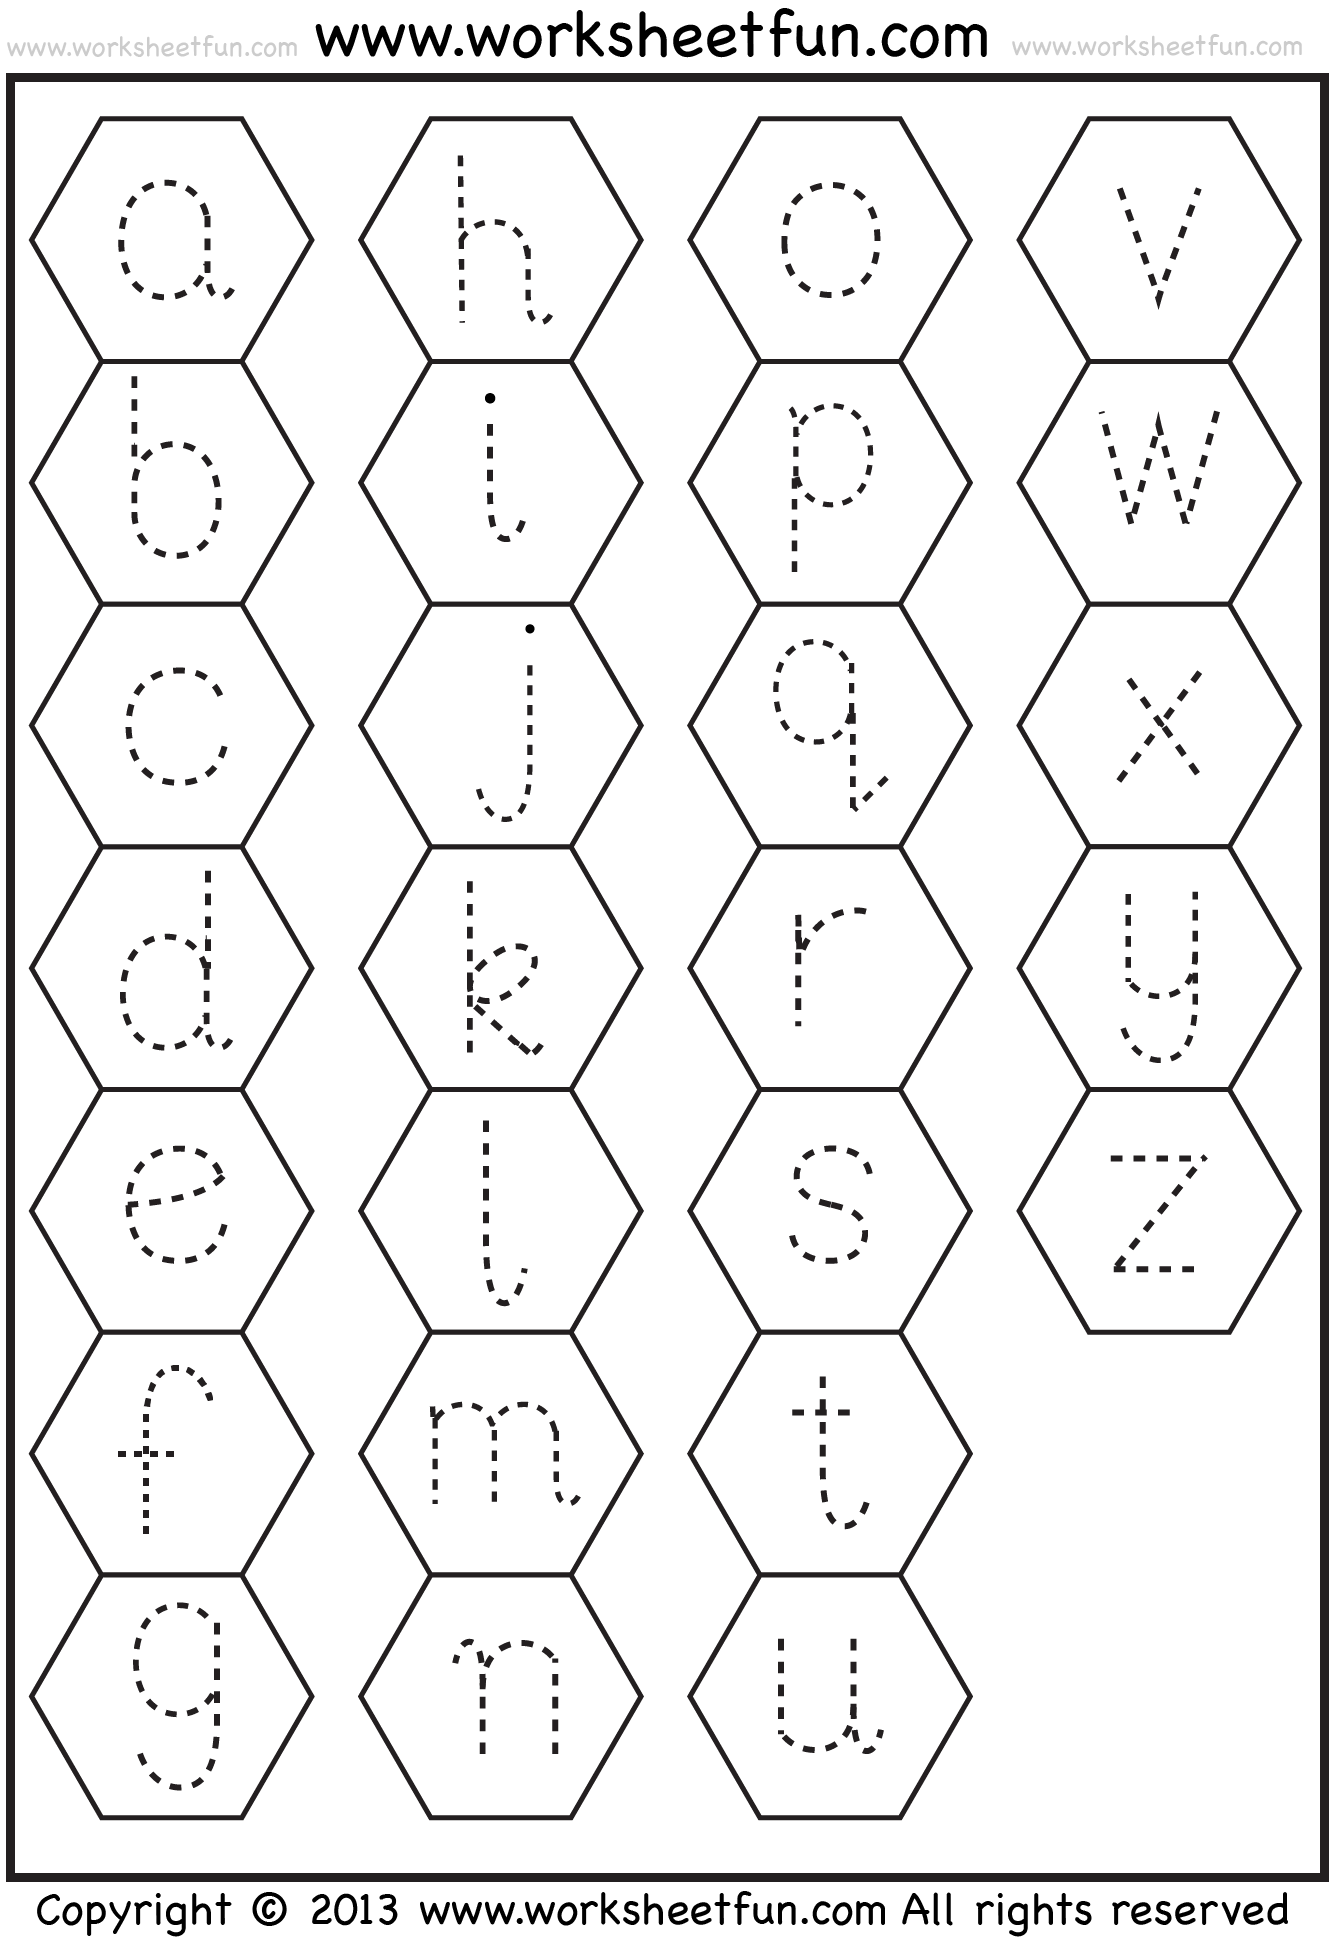 Small Letter Tracing